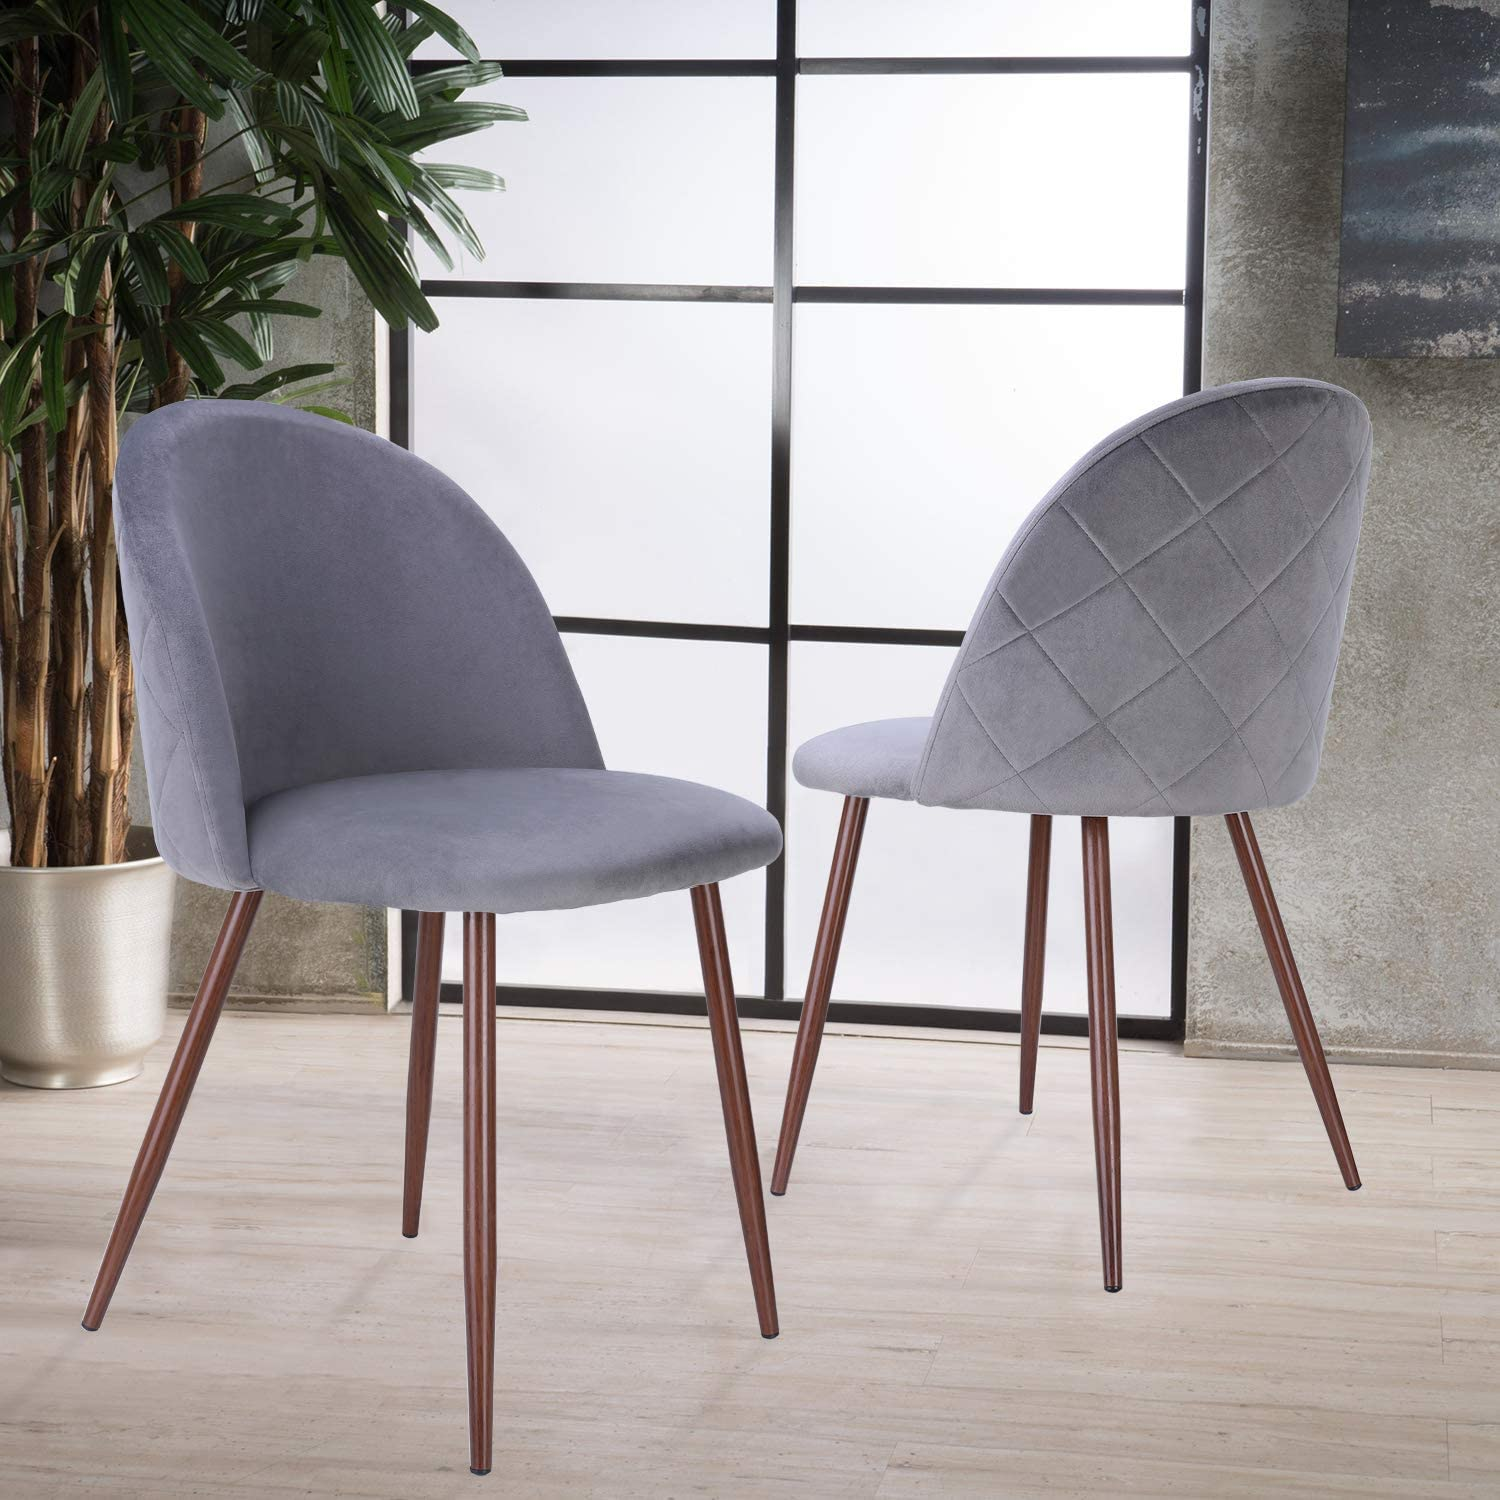 HOMECHO Dining Chairs Set of 2 Velvet Upholstered Side Chair Gray Modern Accent/Leisure/Chairs/with/Metal/Legs for/Kitchen//Living//Dining Room